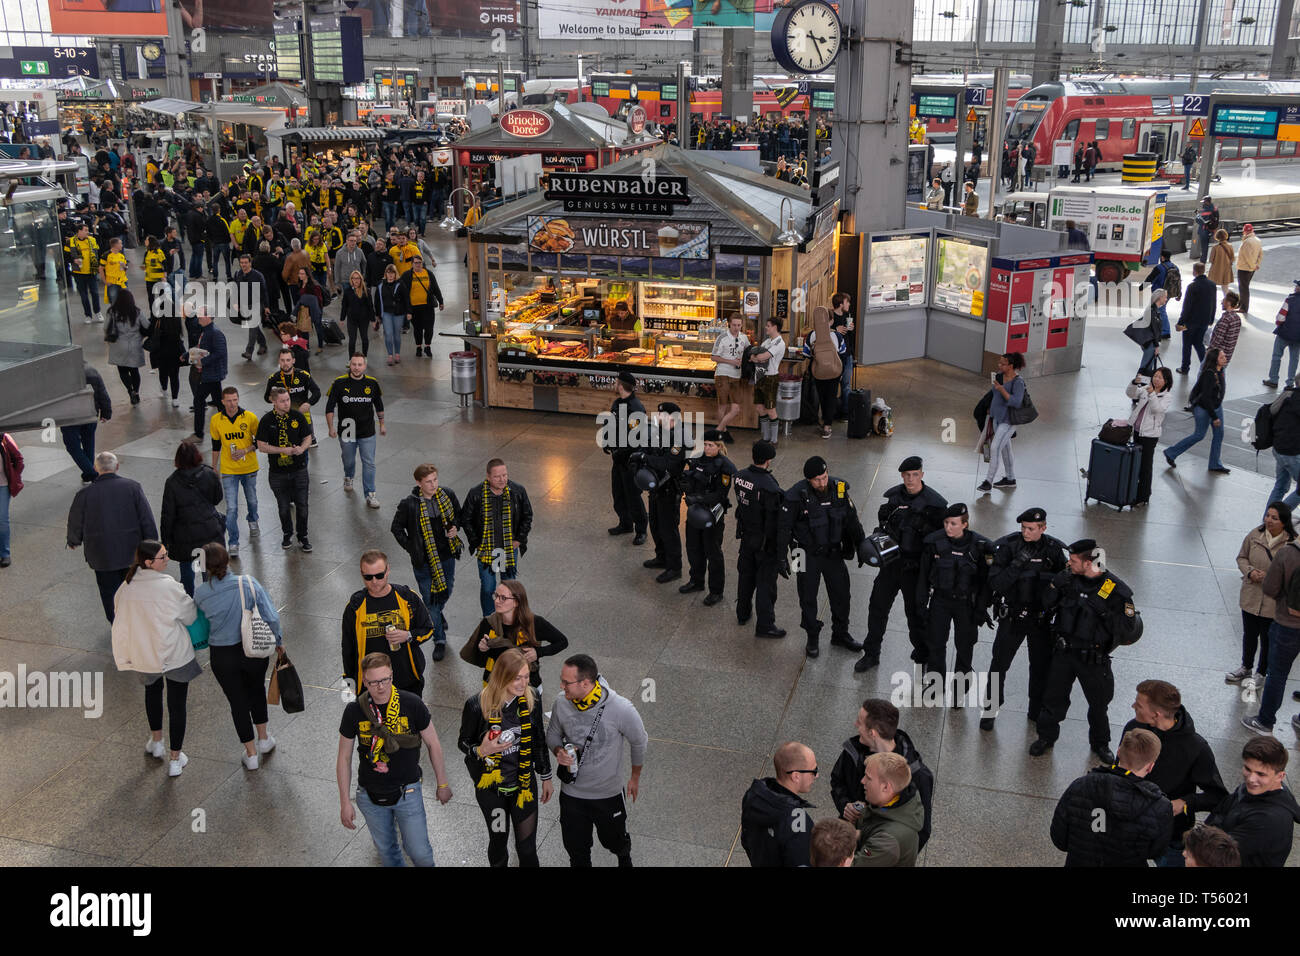 CENTRAL STATIONS, MUNICH, APRIL 6, 2019: massive police forces take care for safty of football fans in the central stations - Stock Image